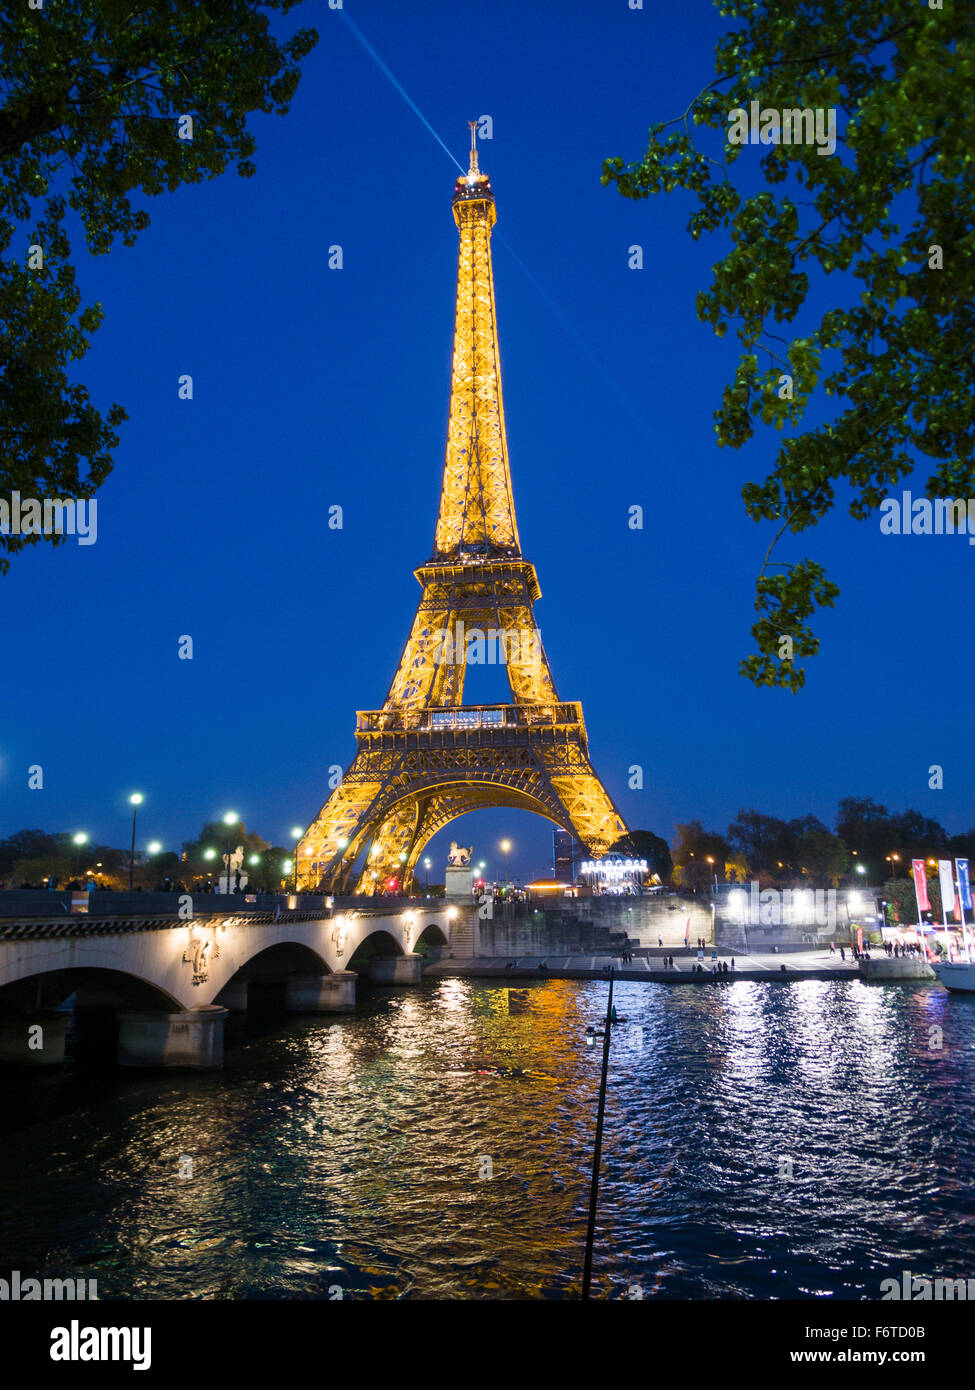 Eiffel's Tower lit at dusk and reflecting in the Seine. A searchlight shines from the top. Paris, Île-de - Stock Image